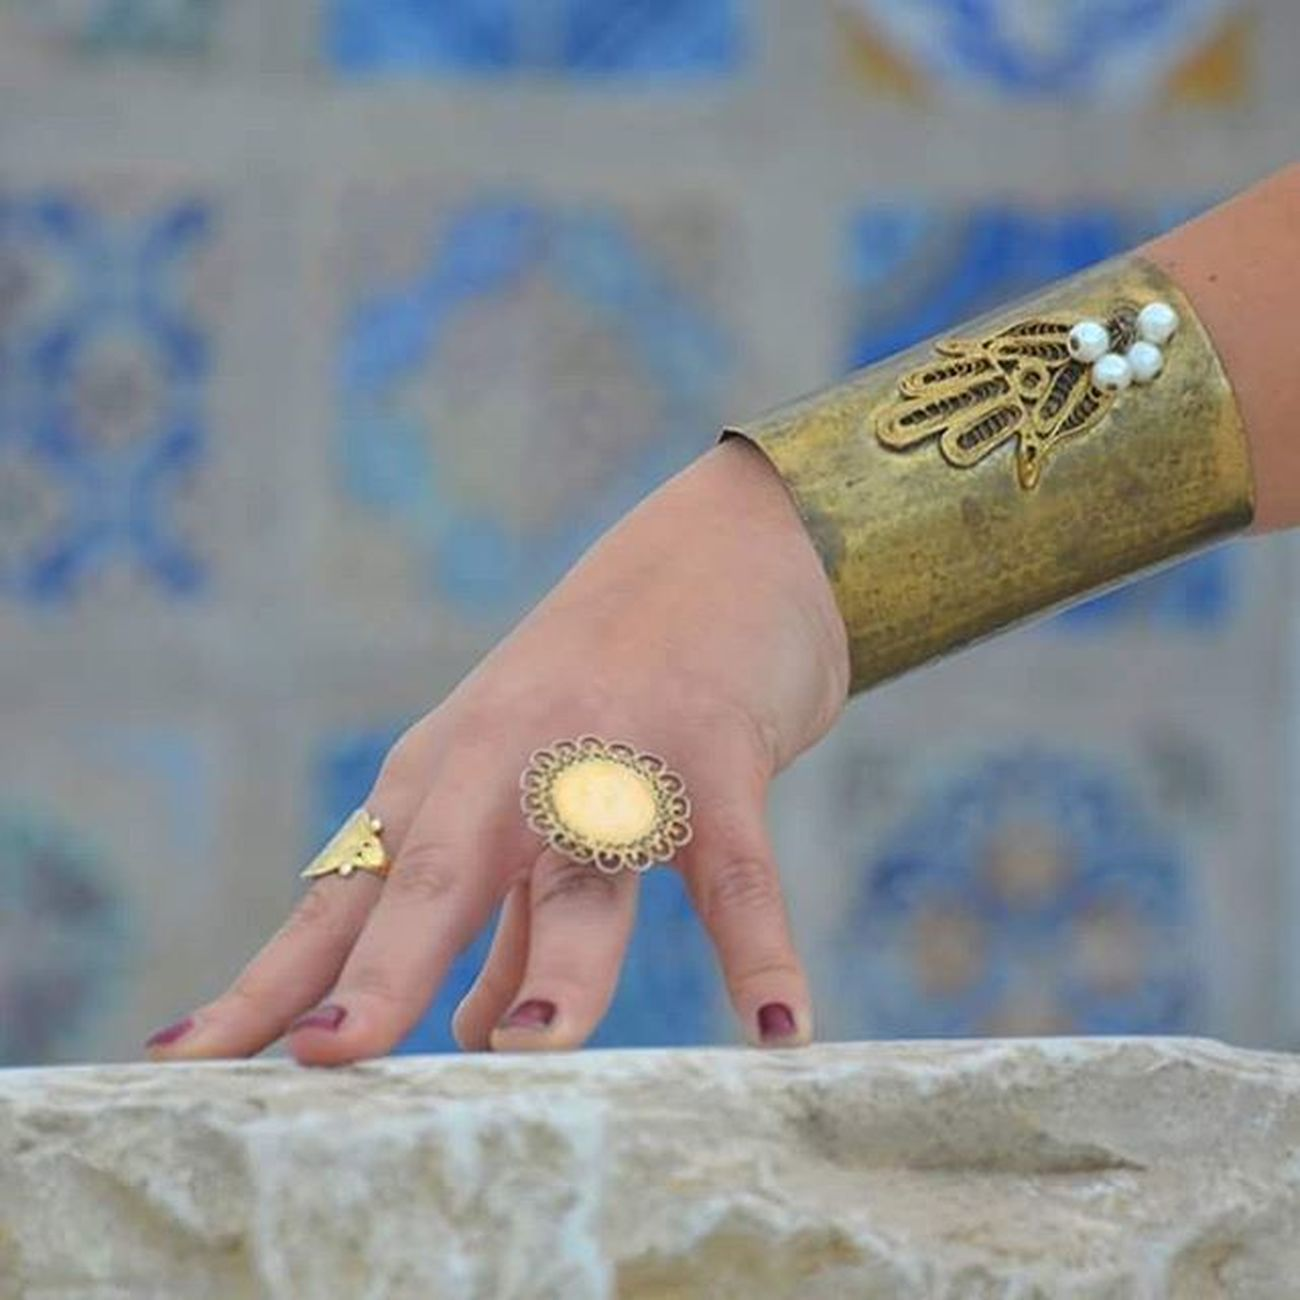 Tunisia IgersTunisia Ring Lord_of_the_rings Jewelry Gold Wikilovesafrica Wlaf Carthagina قرطاجينة أحكيلي Hand_of_fatma Khomsa Migyass تونس ... تعاويذ اﻷلوان :)